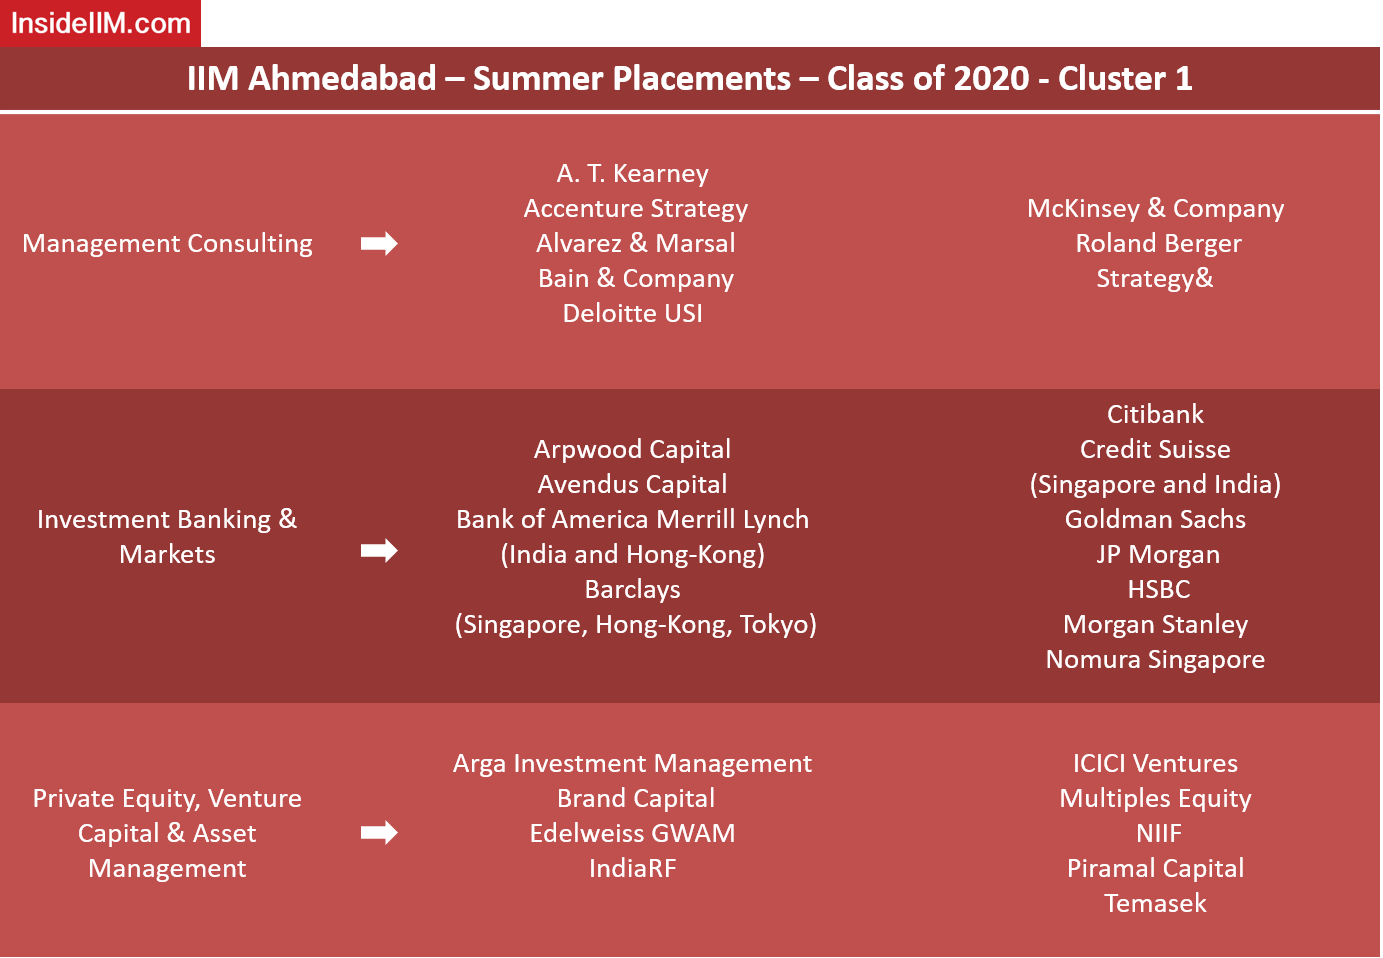 IIM Ahmedabad Placements - Companies: Management Consulting, Investment Banking & Markets, Private Equity, Venture Capital & Asset Management